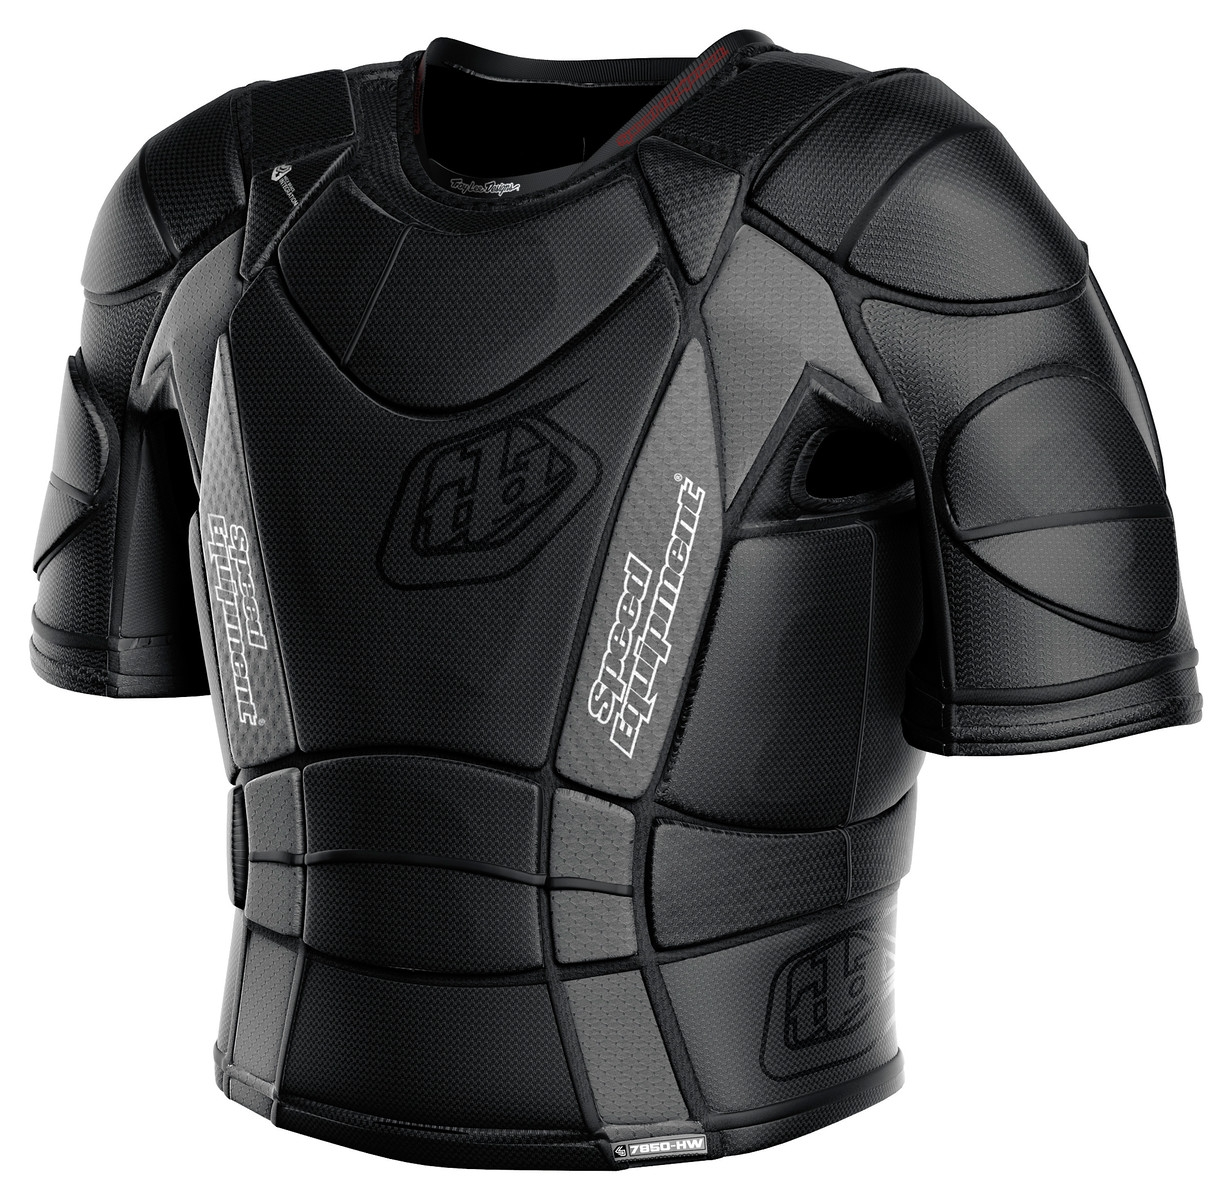 Gilet de protection Troy Lee Designs 7850 Manches courtes Noir - M